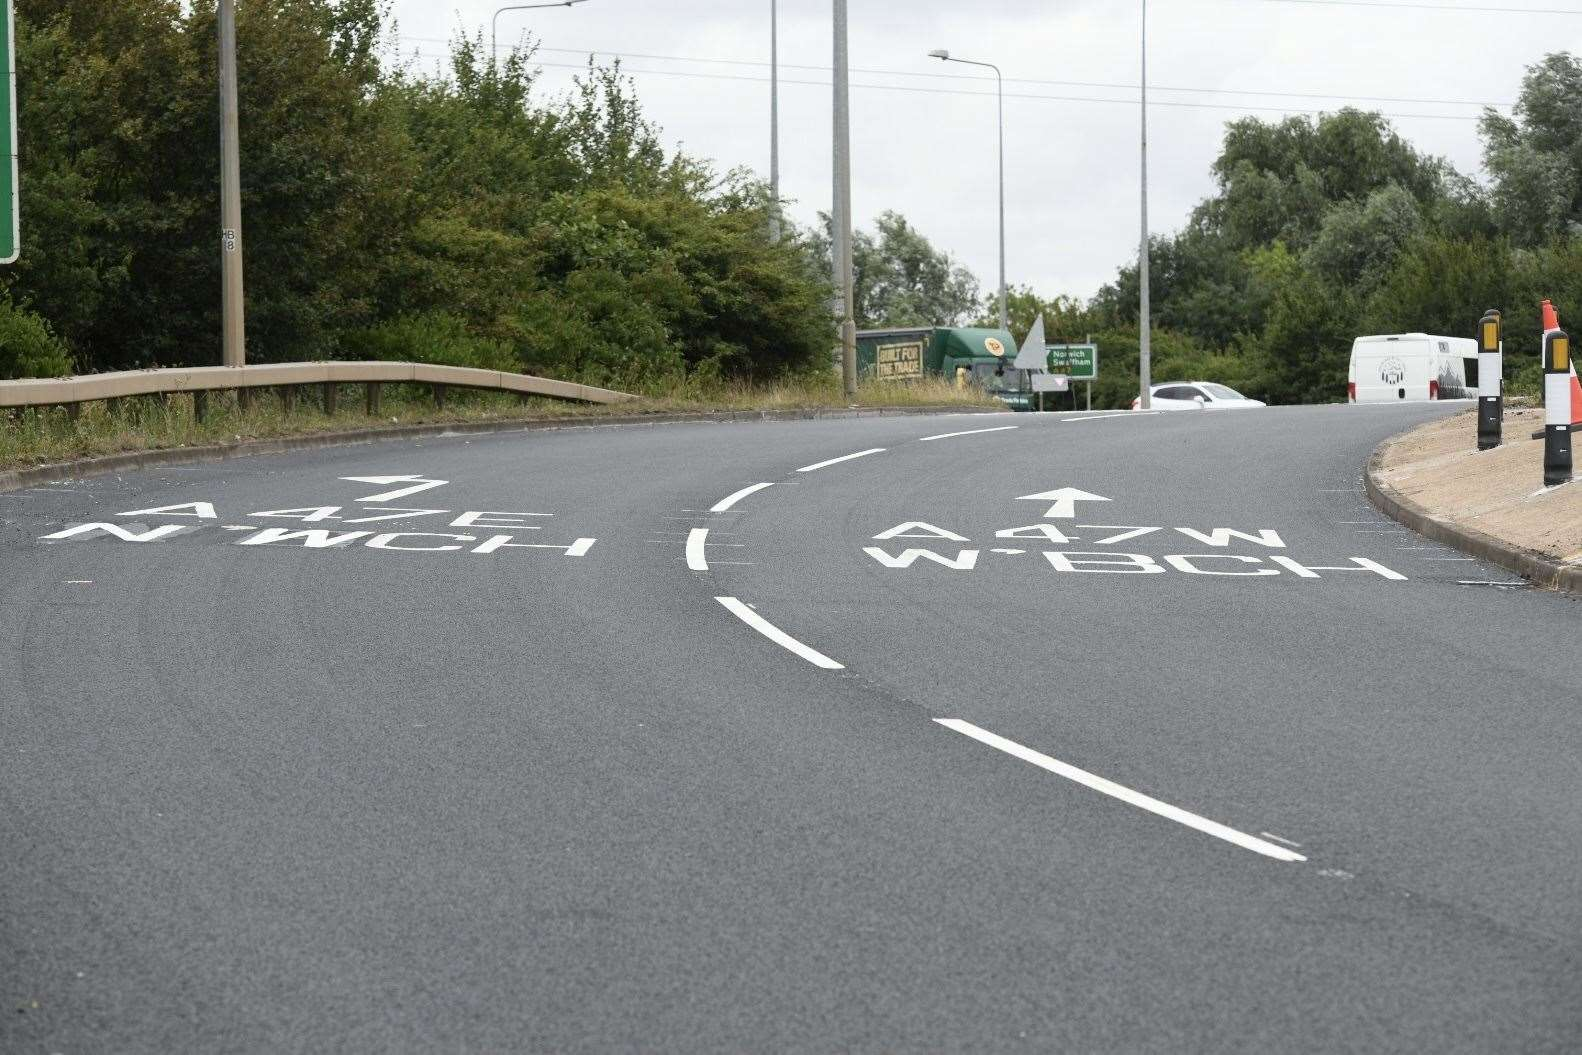 Things looked back to normal for drivers negotiating the Hardwick roundabout this morning (50339237)